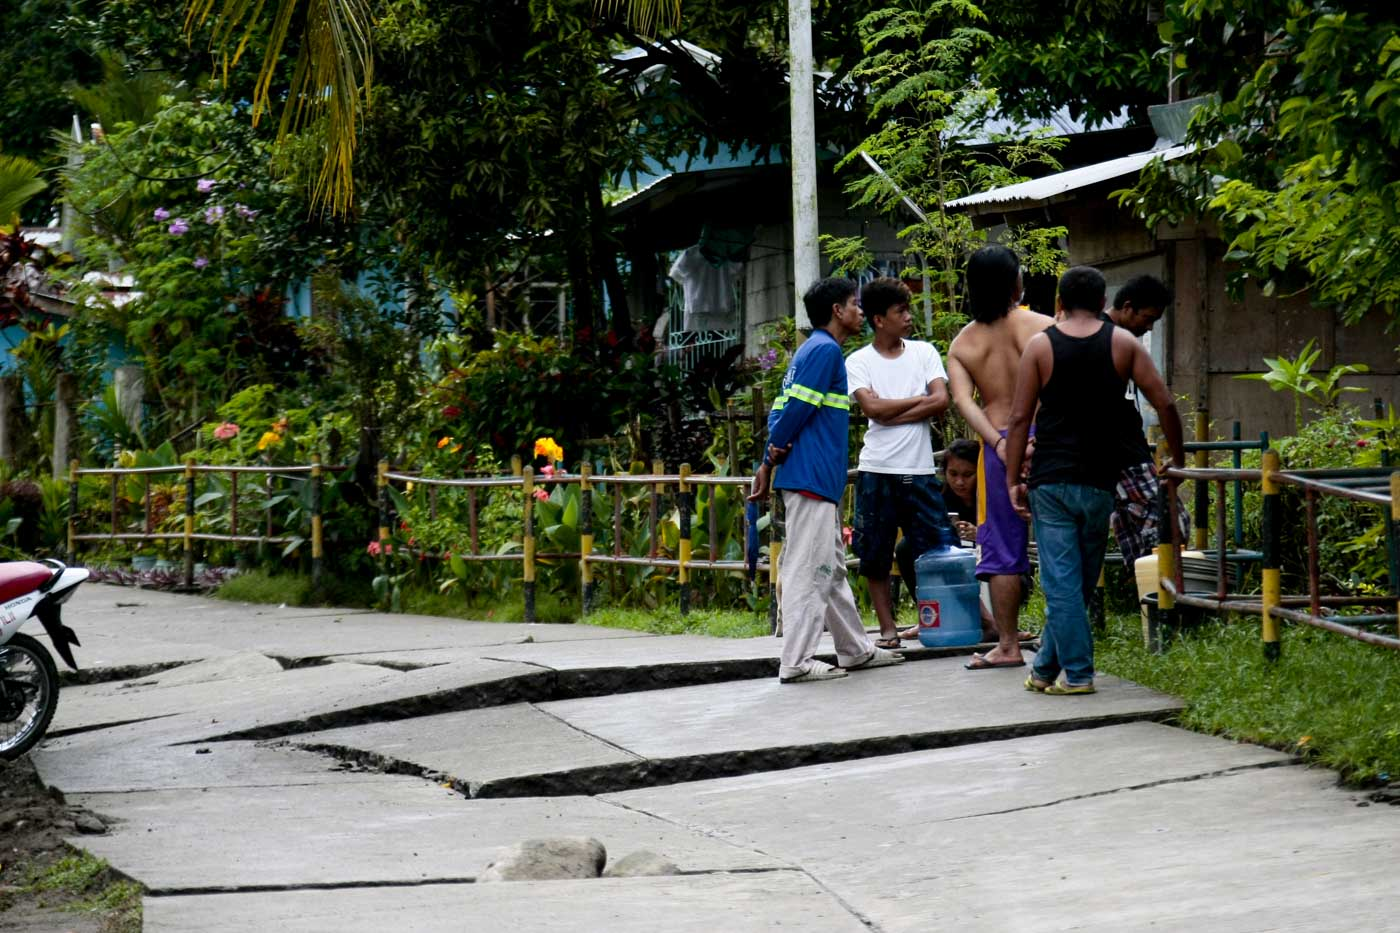 WAITING FOR REPAIRS. Residents gather by a road damaged by the quake. Photo by Gelo Litonjua